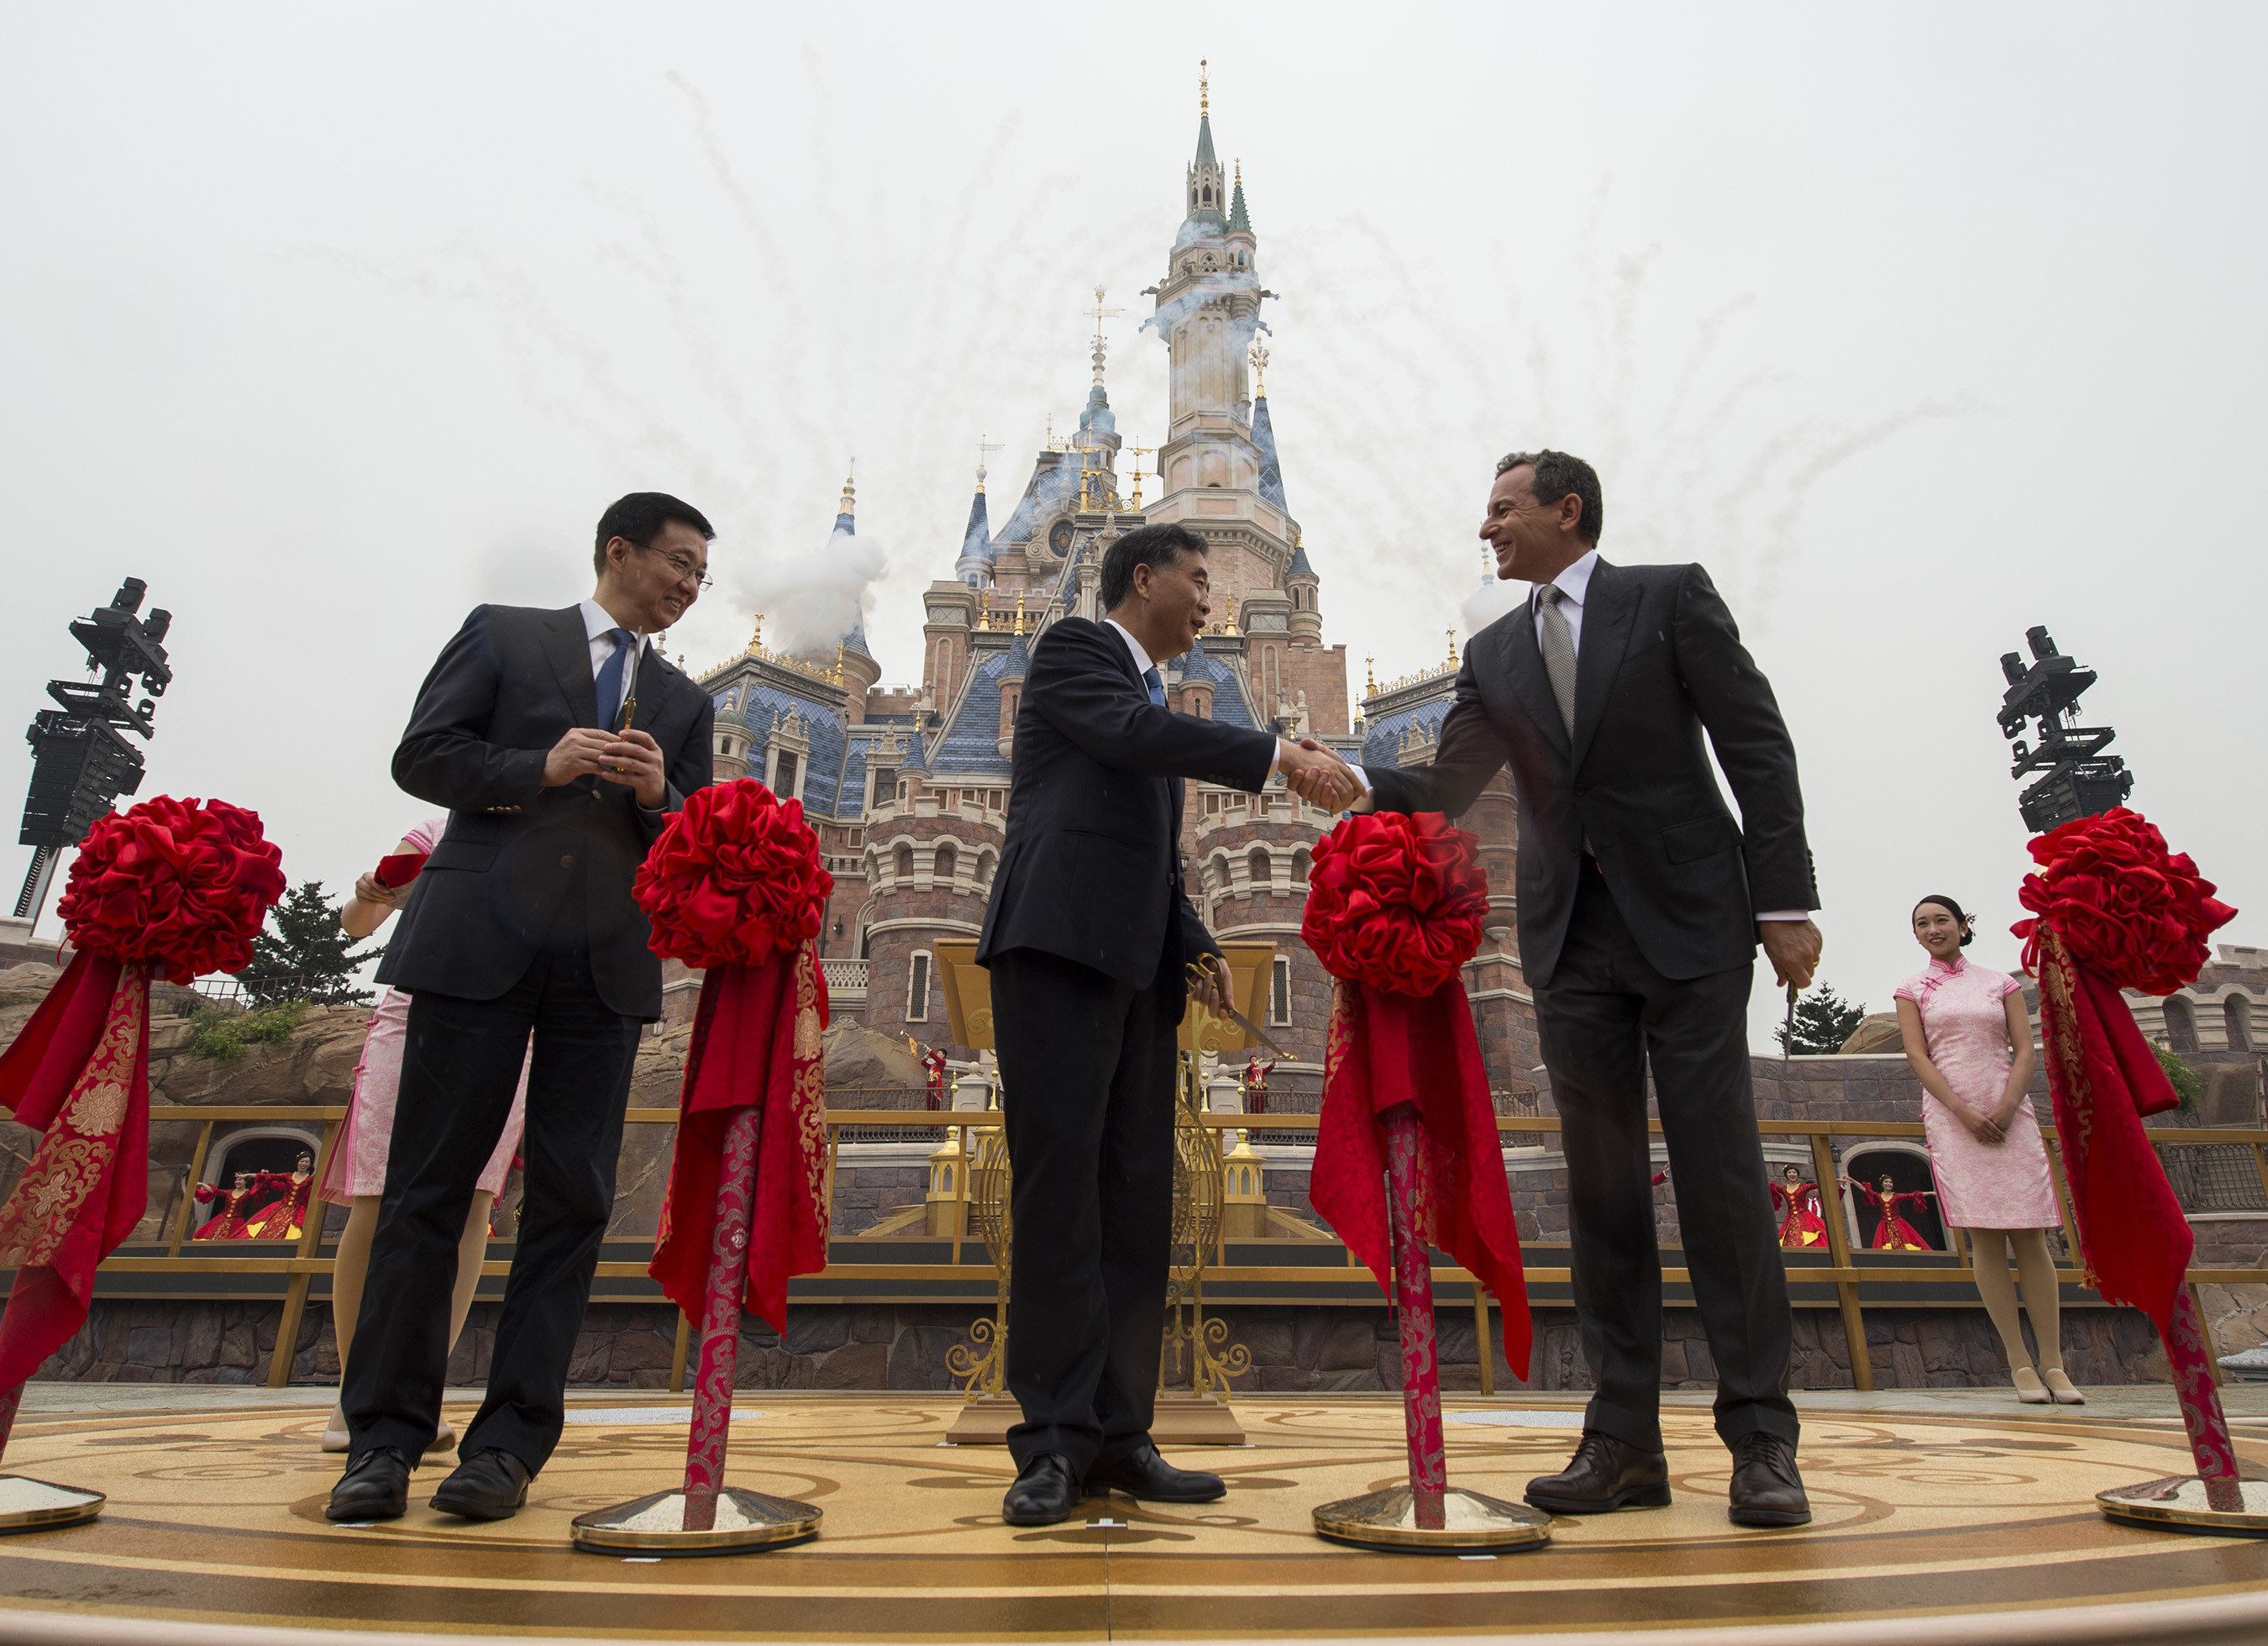 Shanghai Disney Resort Celebrates Historic Grand Opening as the First Disney Resort in Mainland China